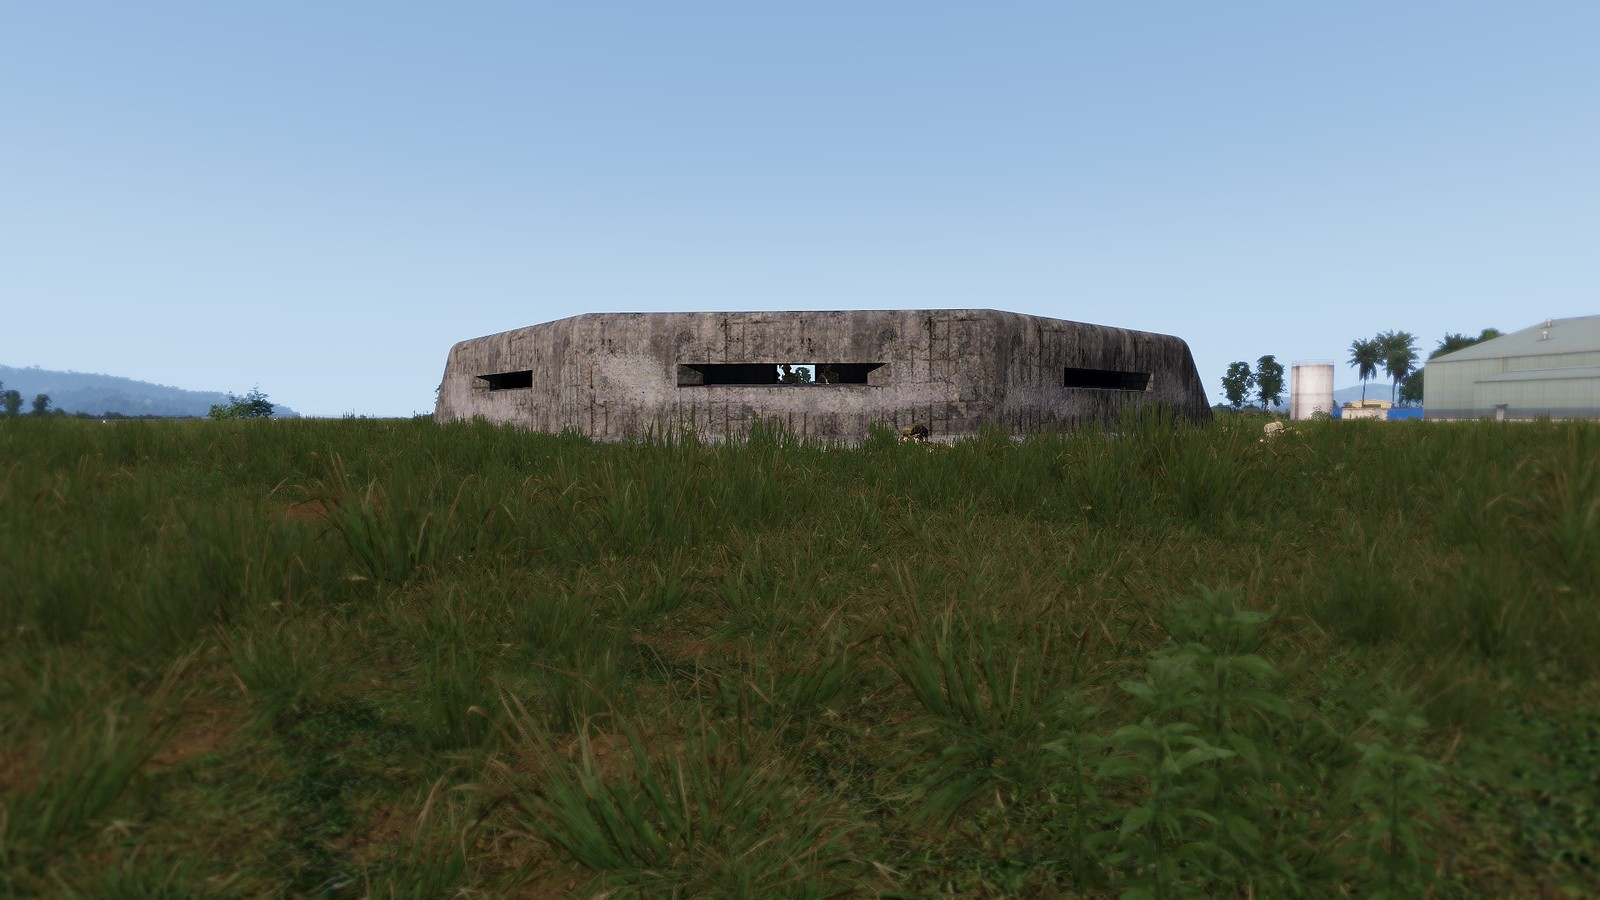 C Shaped Bunker front view